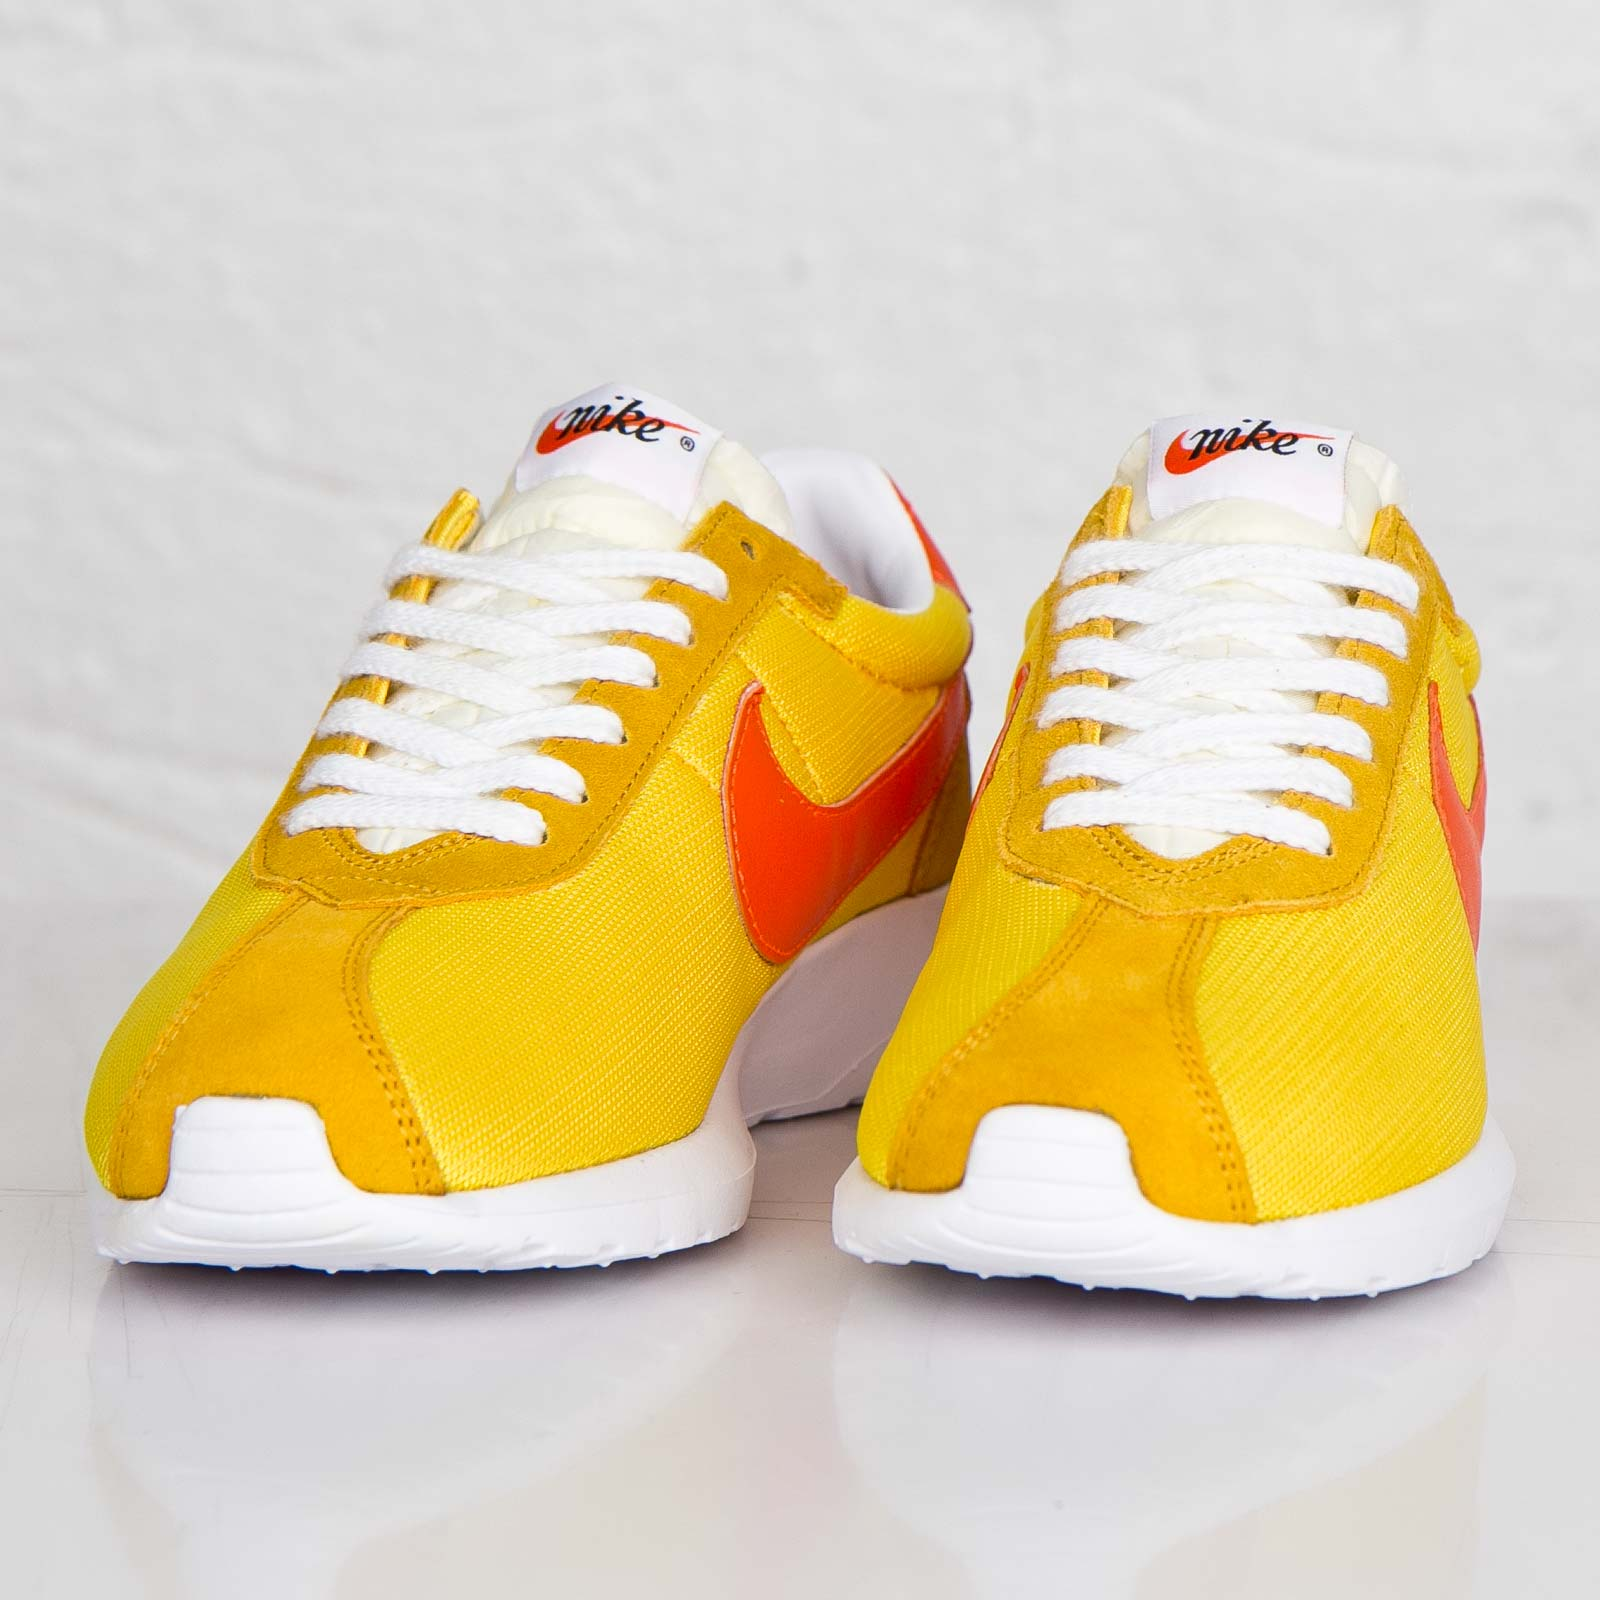 NIKE Air Roshe ld1000 SP 44.5 Varsity Maize/sfty ORNGWhite